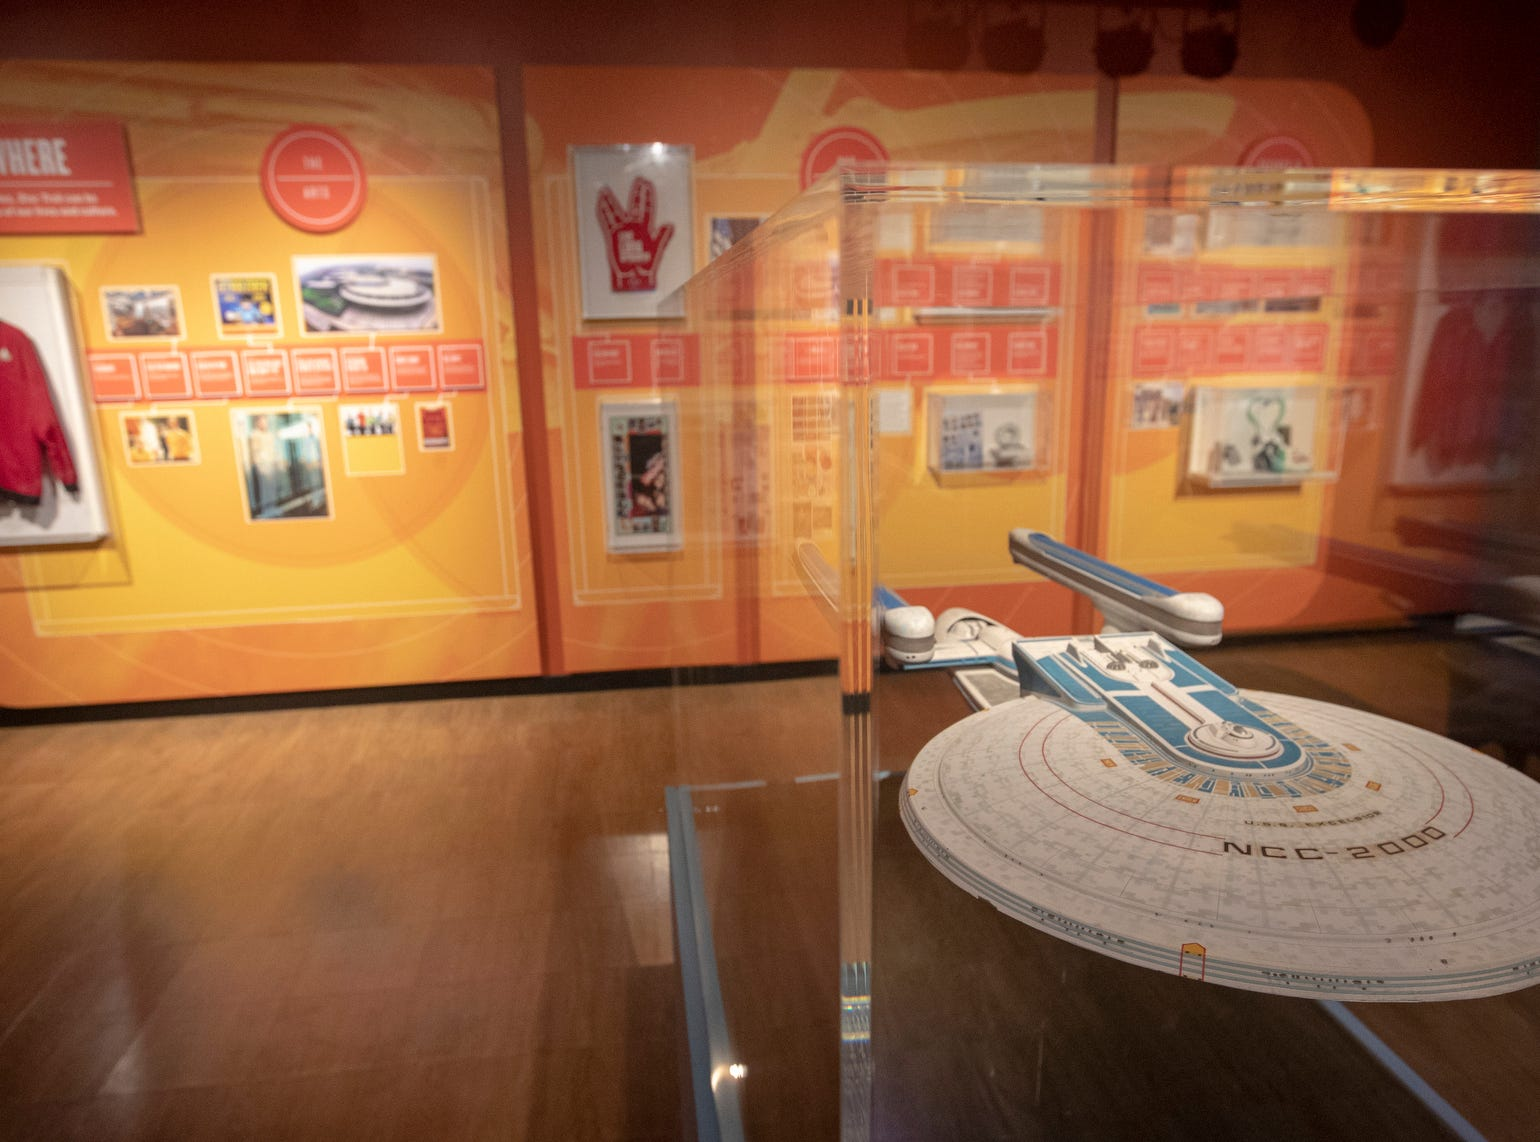 """A display showing various ways the Star Trek universe has inspired popular culture over the years -- with a model of a starship in the foreground -- is seen at The Children's Museum of Indianapolis, on Wednesday, Jan. 23, 2019. The """"Star Trek: Exploring New Worlds"""" exhibit is made up of set pieces, ship models, and outfits used during various Star Trek shows and movies and is on display at the museum from Feb. 2 through April 7, 2019."""